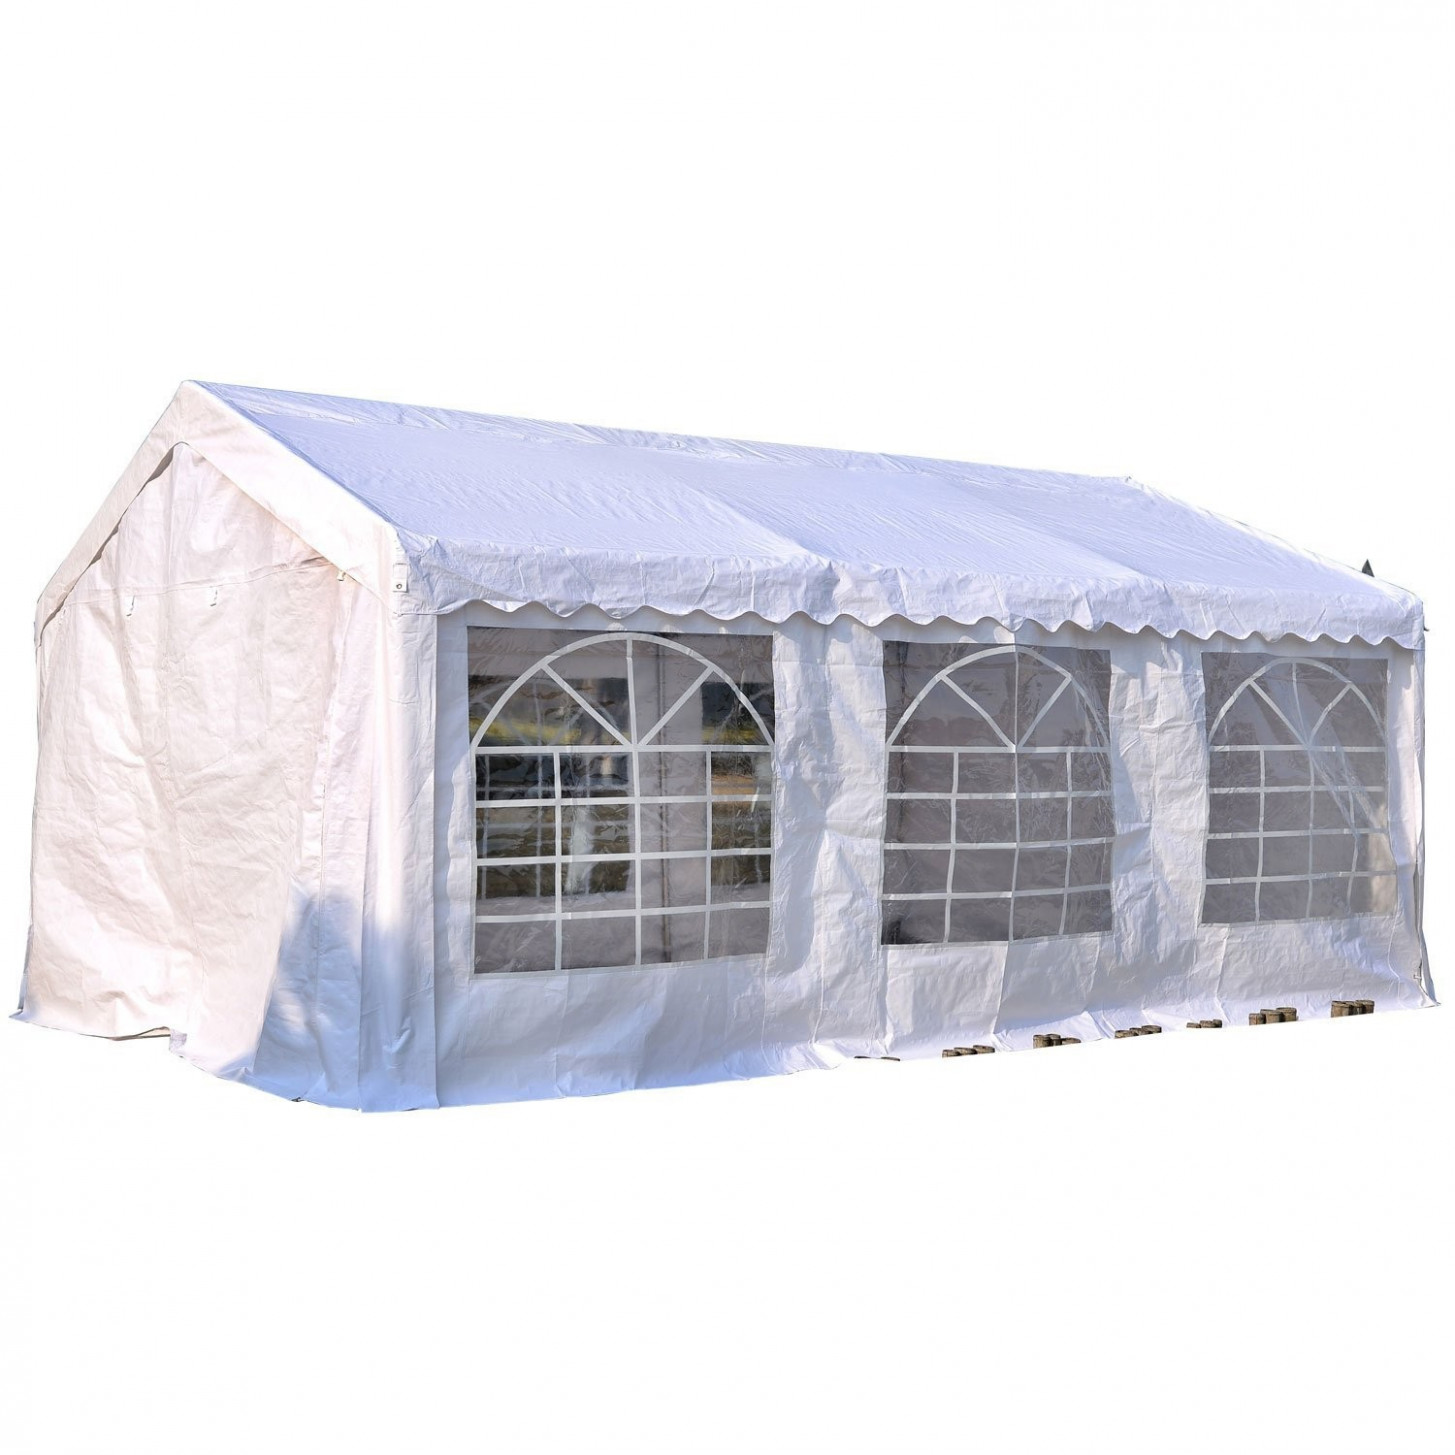 Outsunny Garden Gazebo Marquee Party Tent Wedding Portable Garage Carport Shelter Car Canopy Outdoor Heavy Duty Steel Frame Waterproof Rot Resistant ..